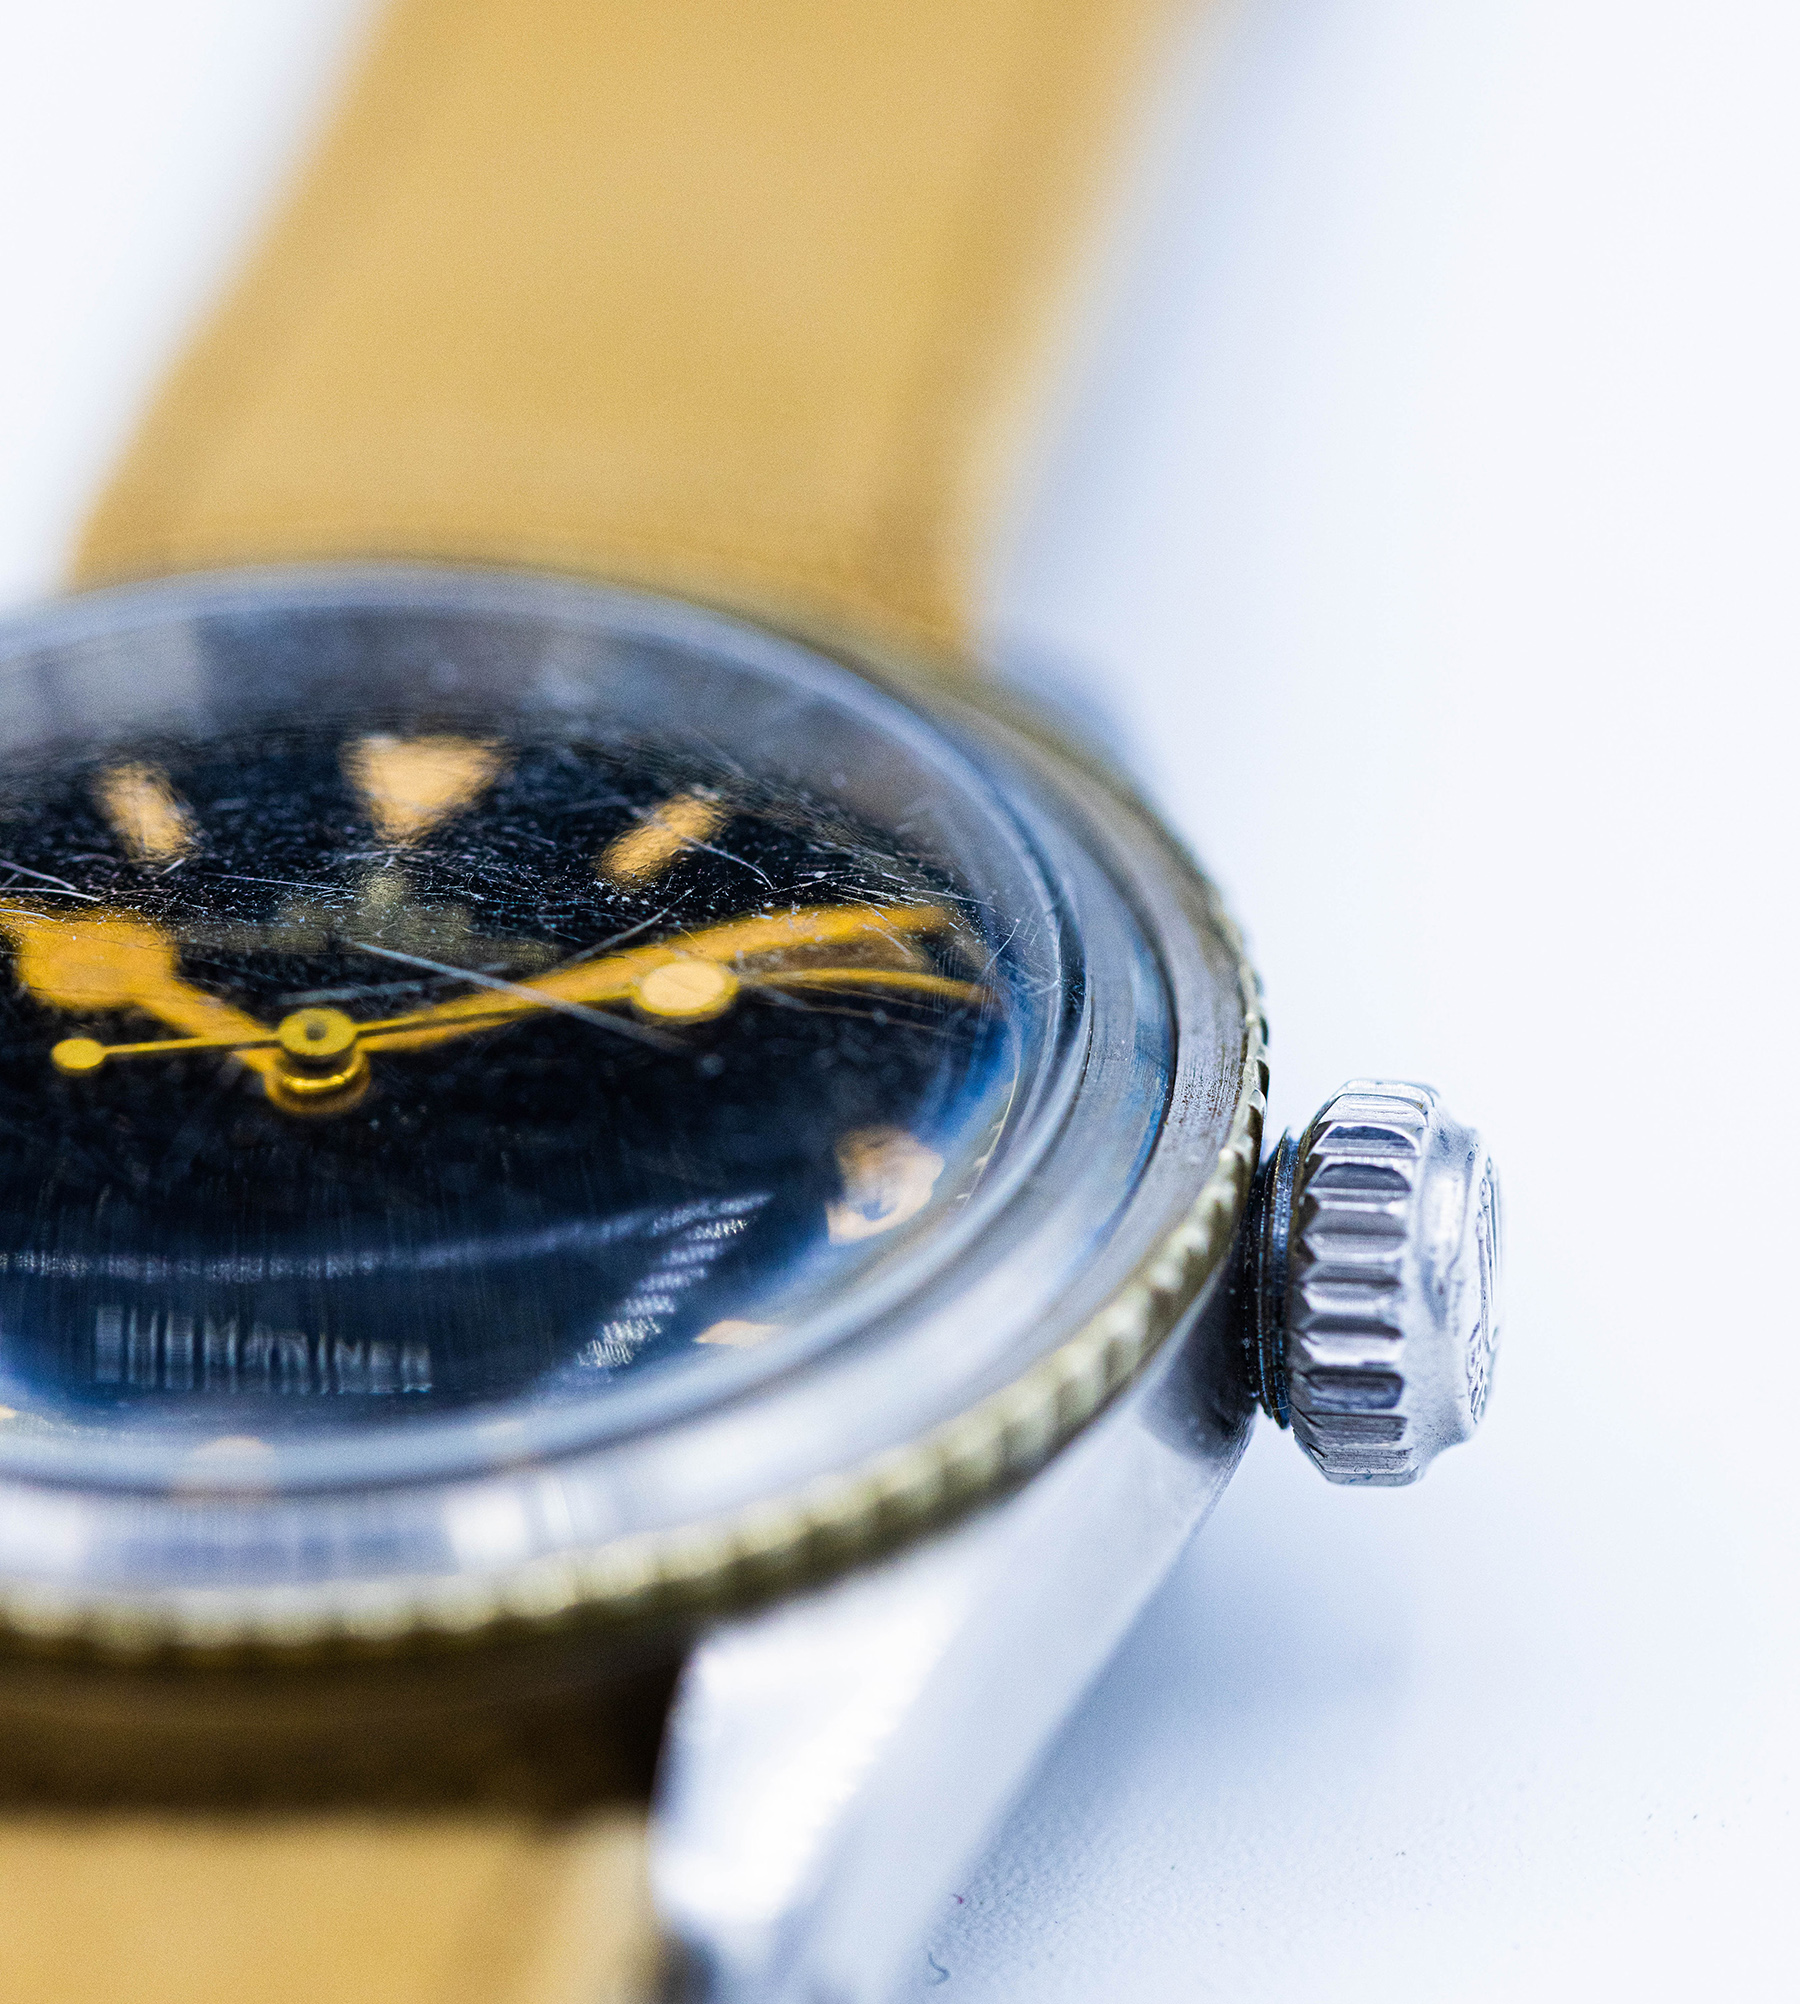 Forgotten vintage Rolex sells for over £200,000, breaking auction records